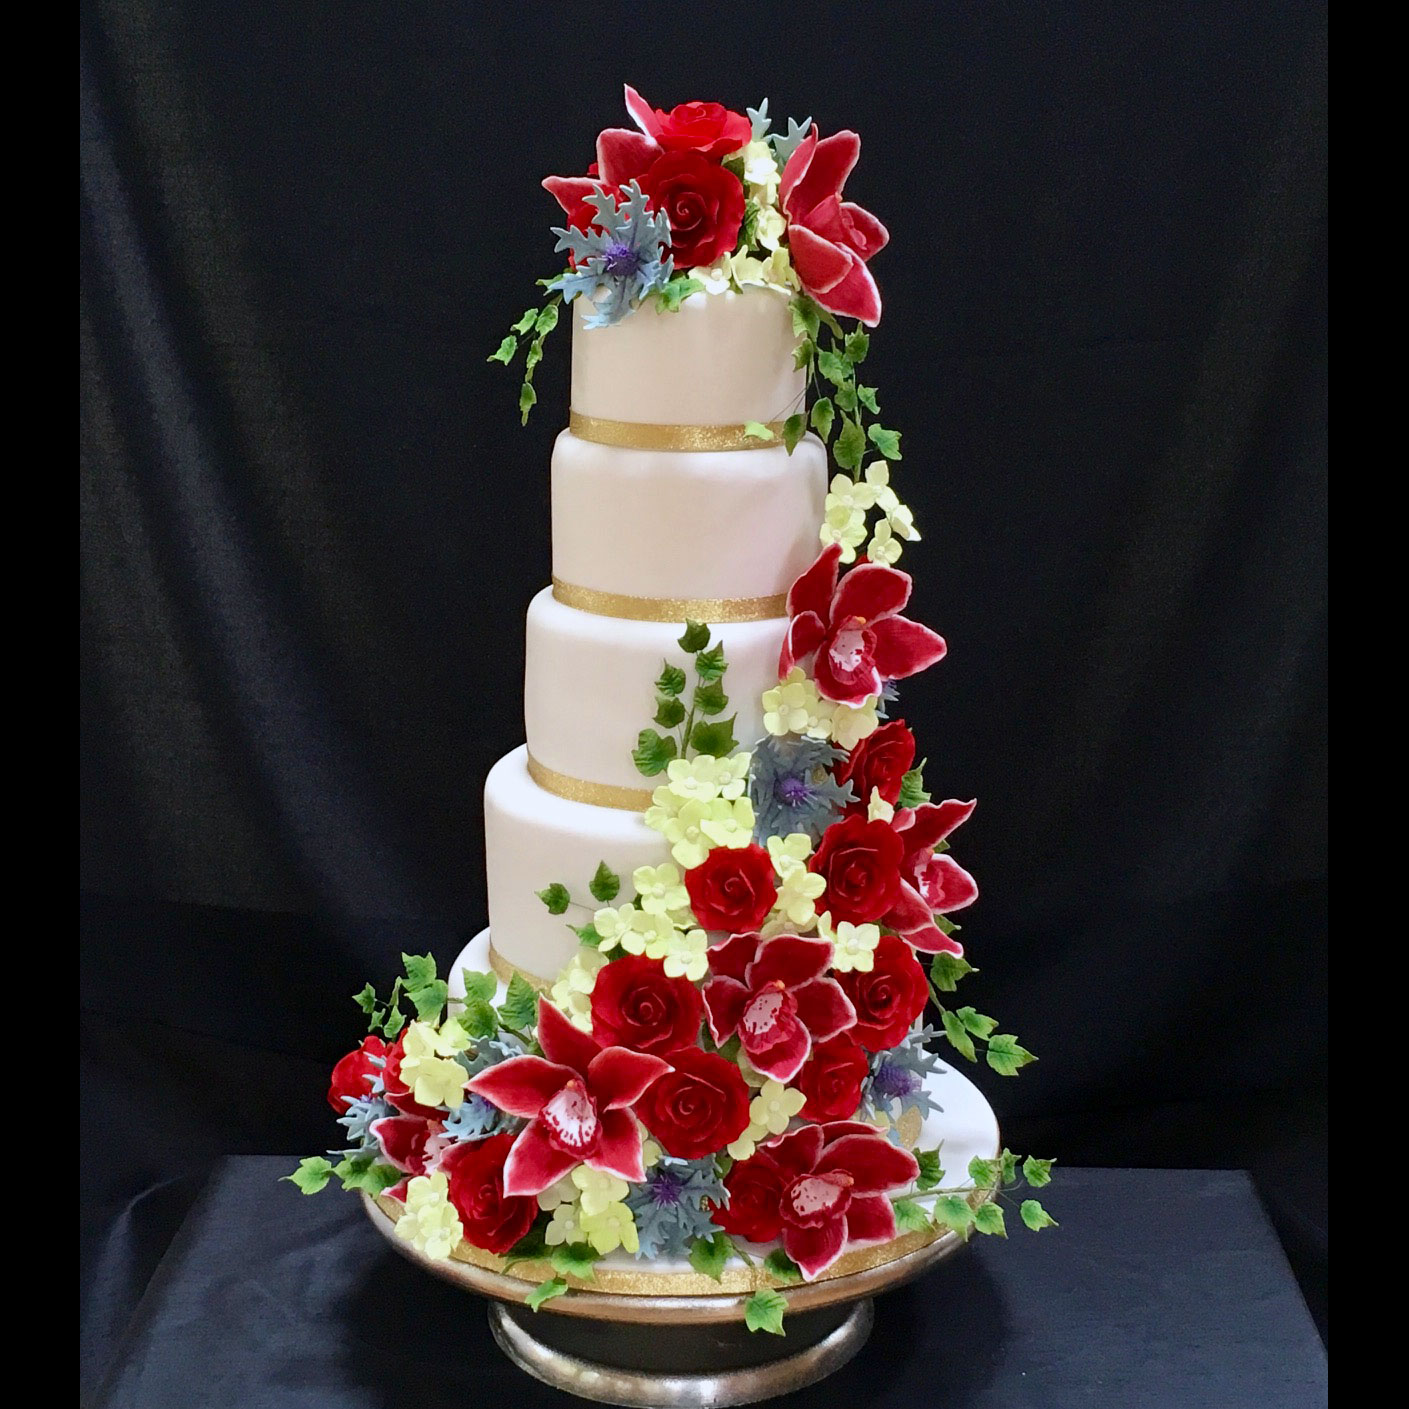 Wedding Cakes With Flowers On Top: Floral Wedding Cakes Floral Wedding Cakes And Cakes With